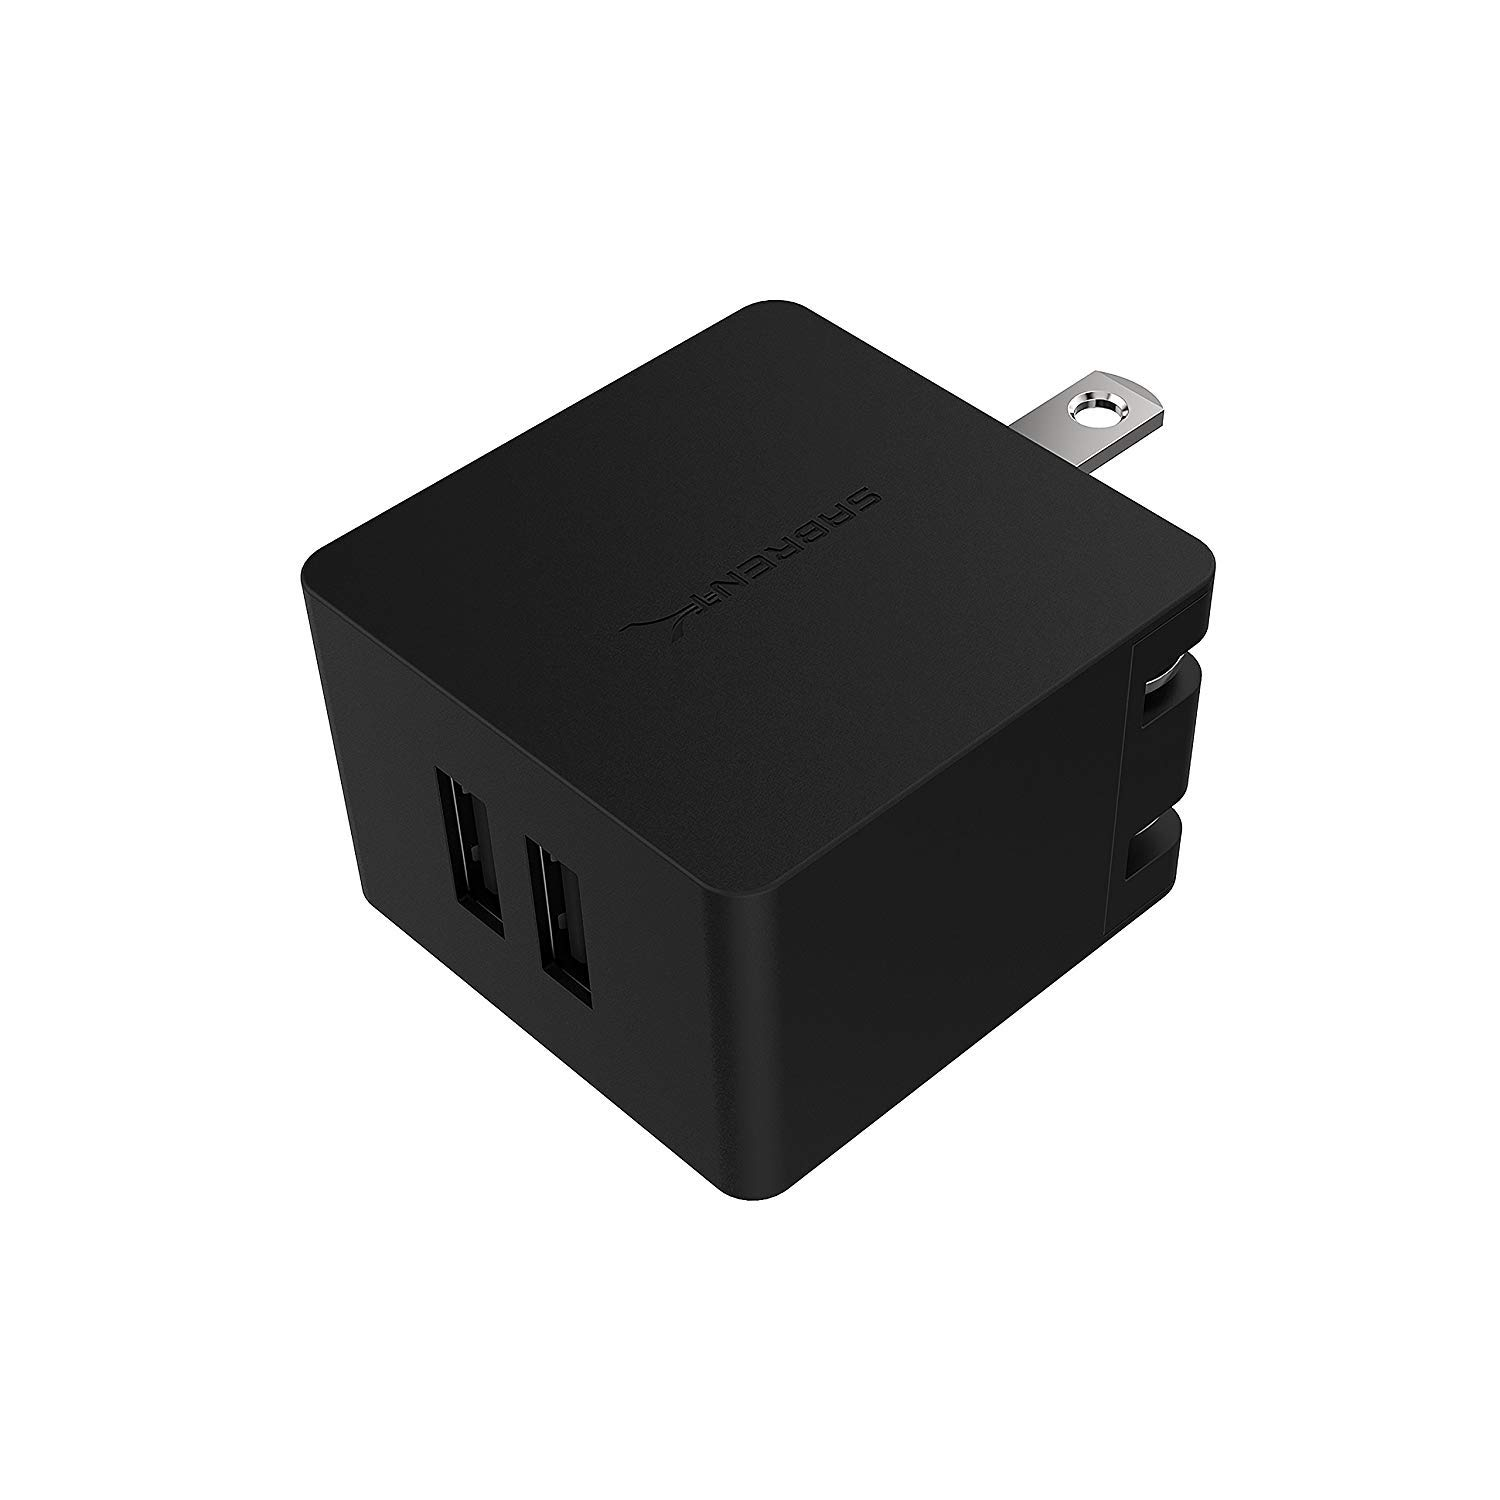 UL Certified Sabrent AX-SMP2 10.5W 2.1 Amp Dual USB Wall Charger with Foldable Plug Smart USB Charger with Auto Detect Technology Black